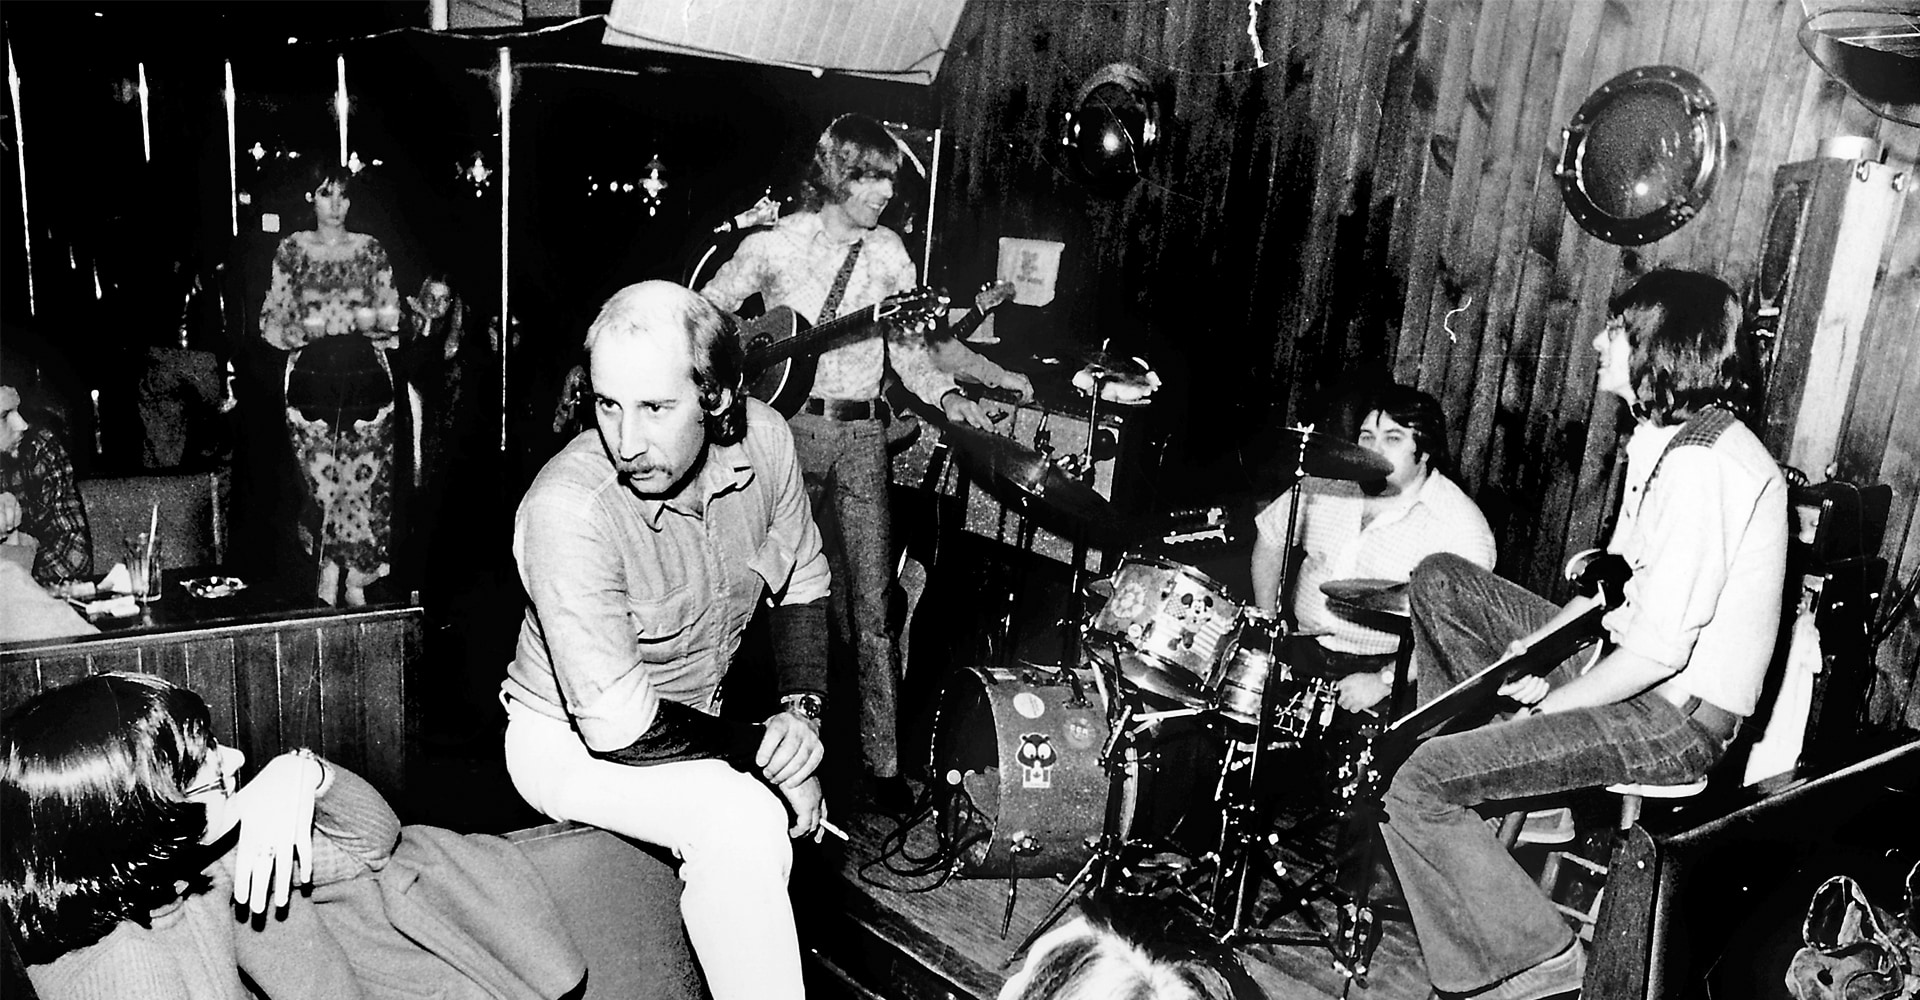 A black and white photograph of a group of people sitting around a stage inside a club. There is wood panelling on the walls and numerous musical instruments can be seen.